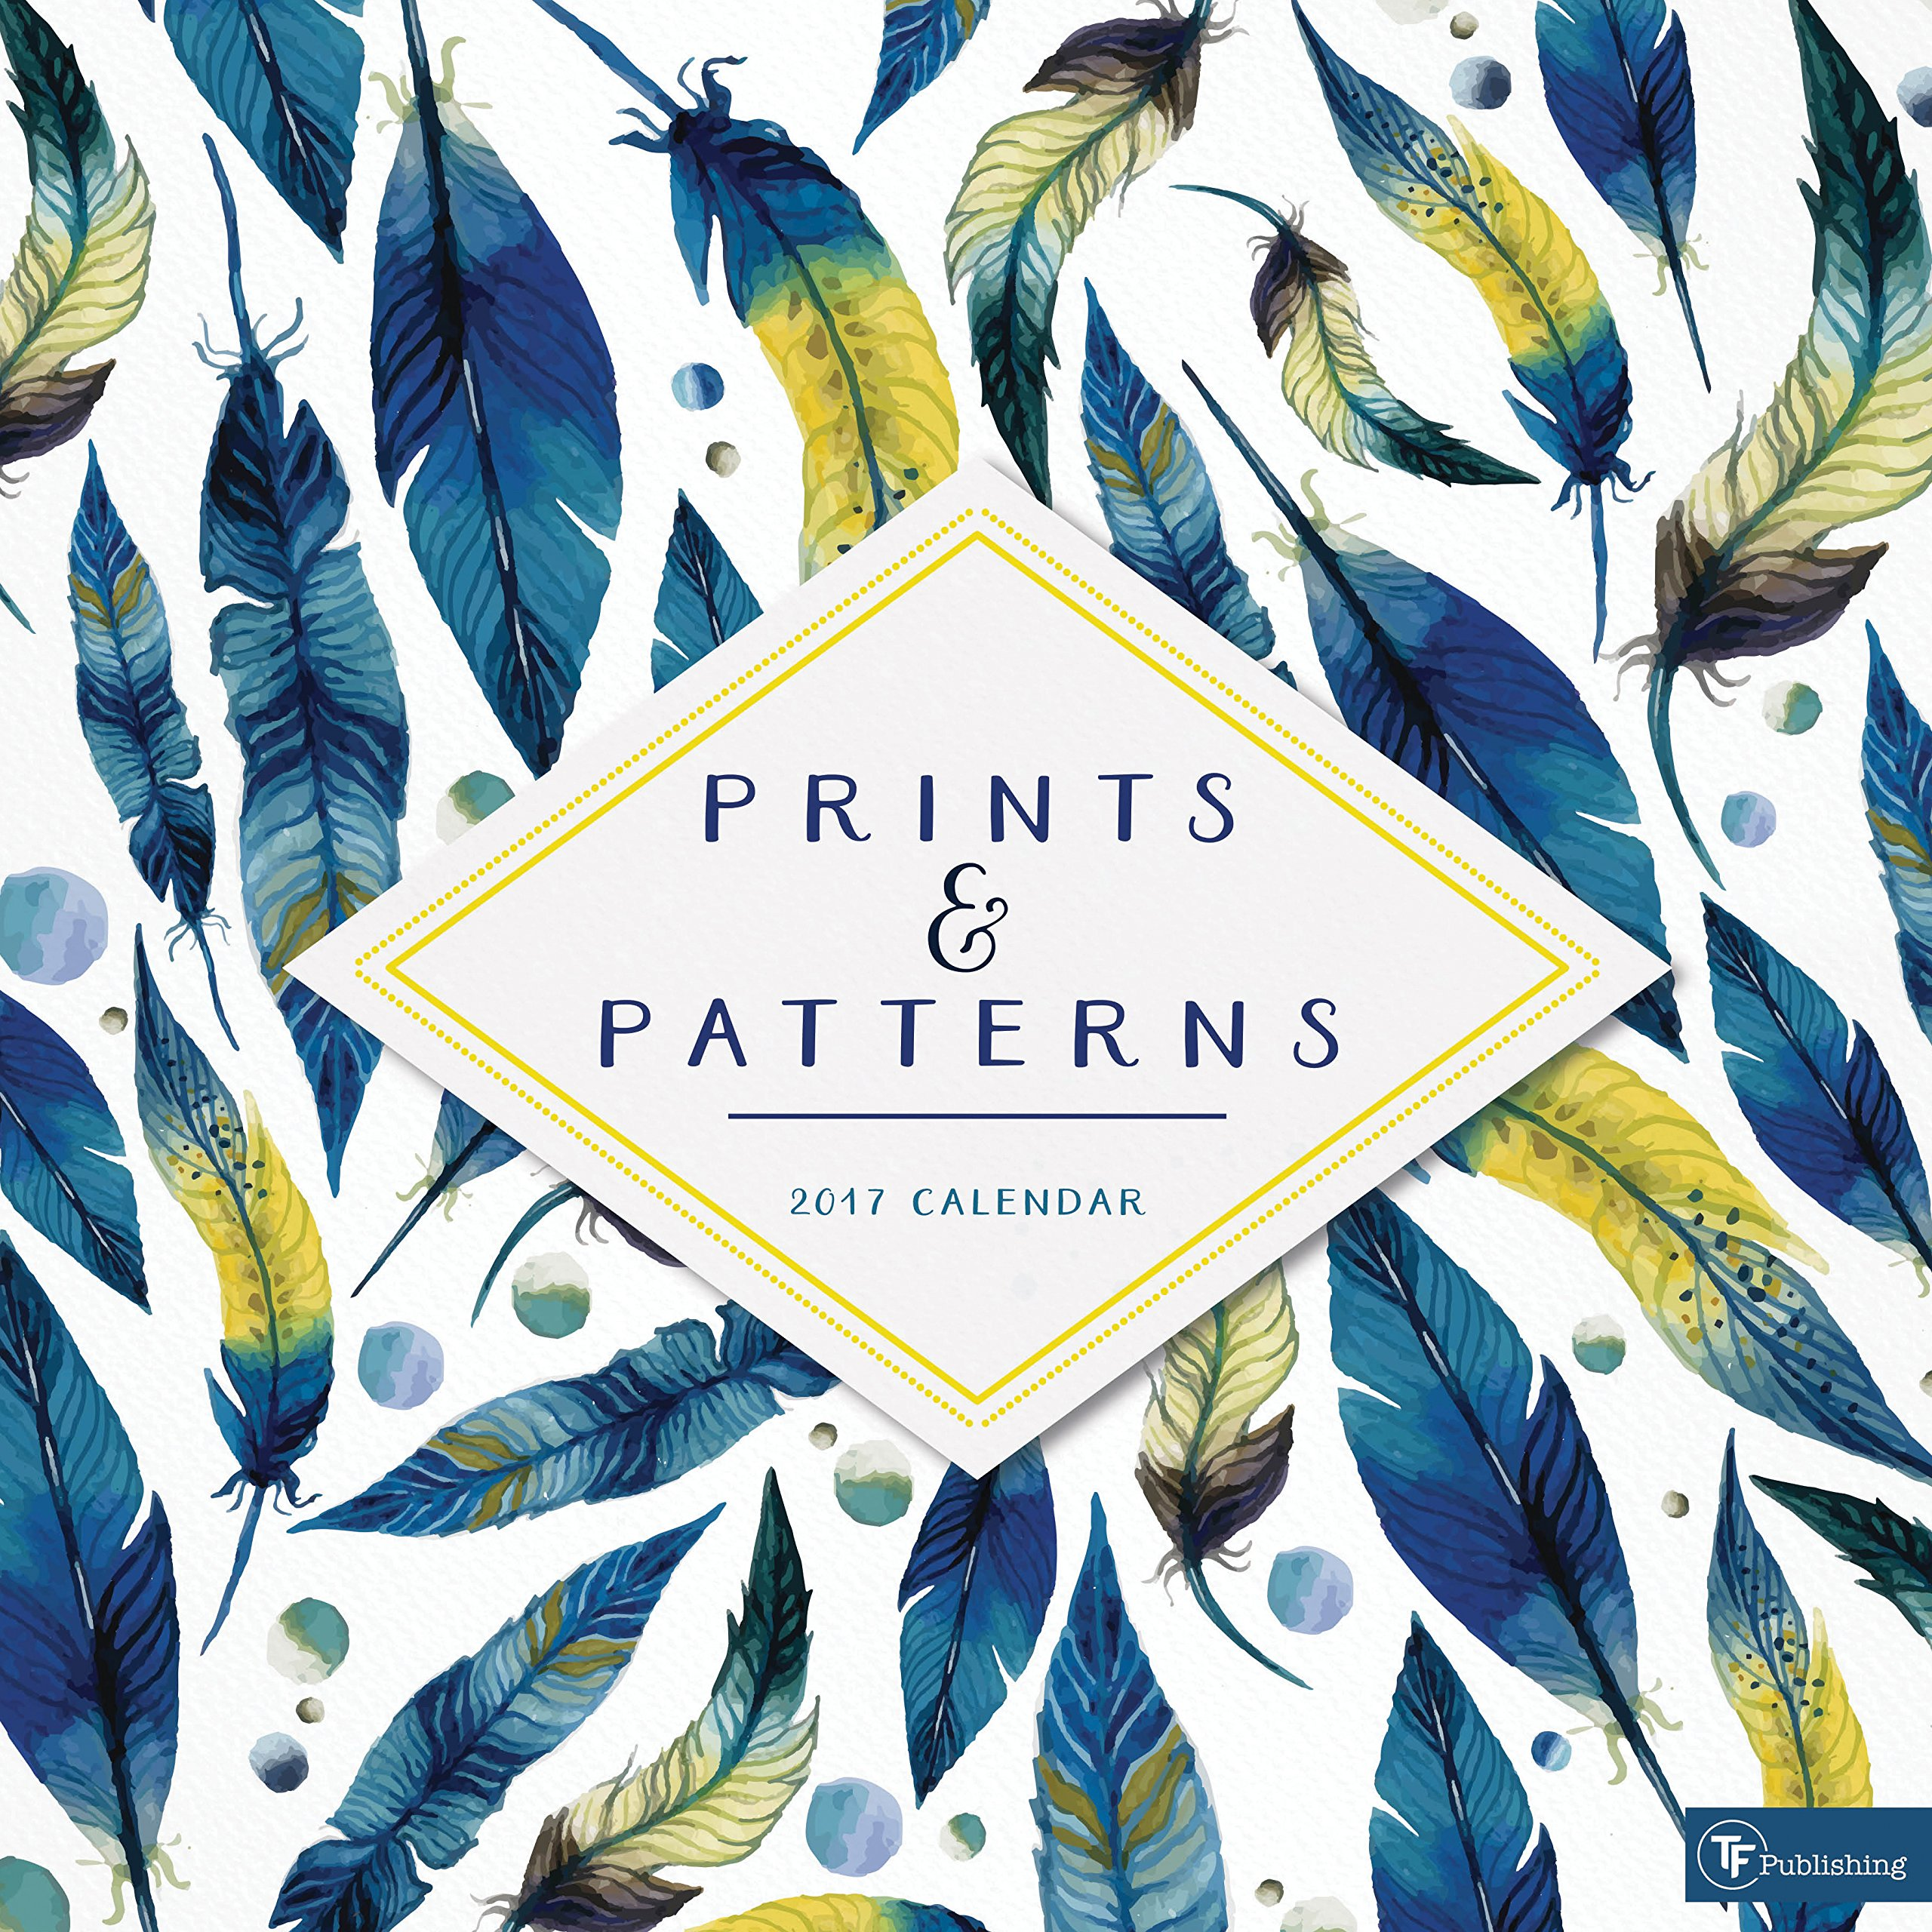 2017 Prints and Patterns Wall Calendar